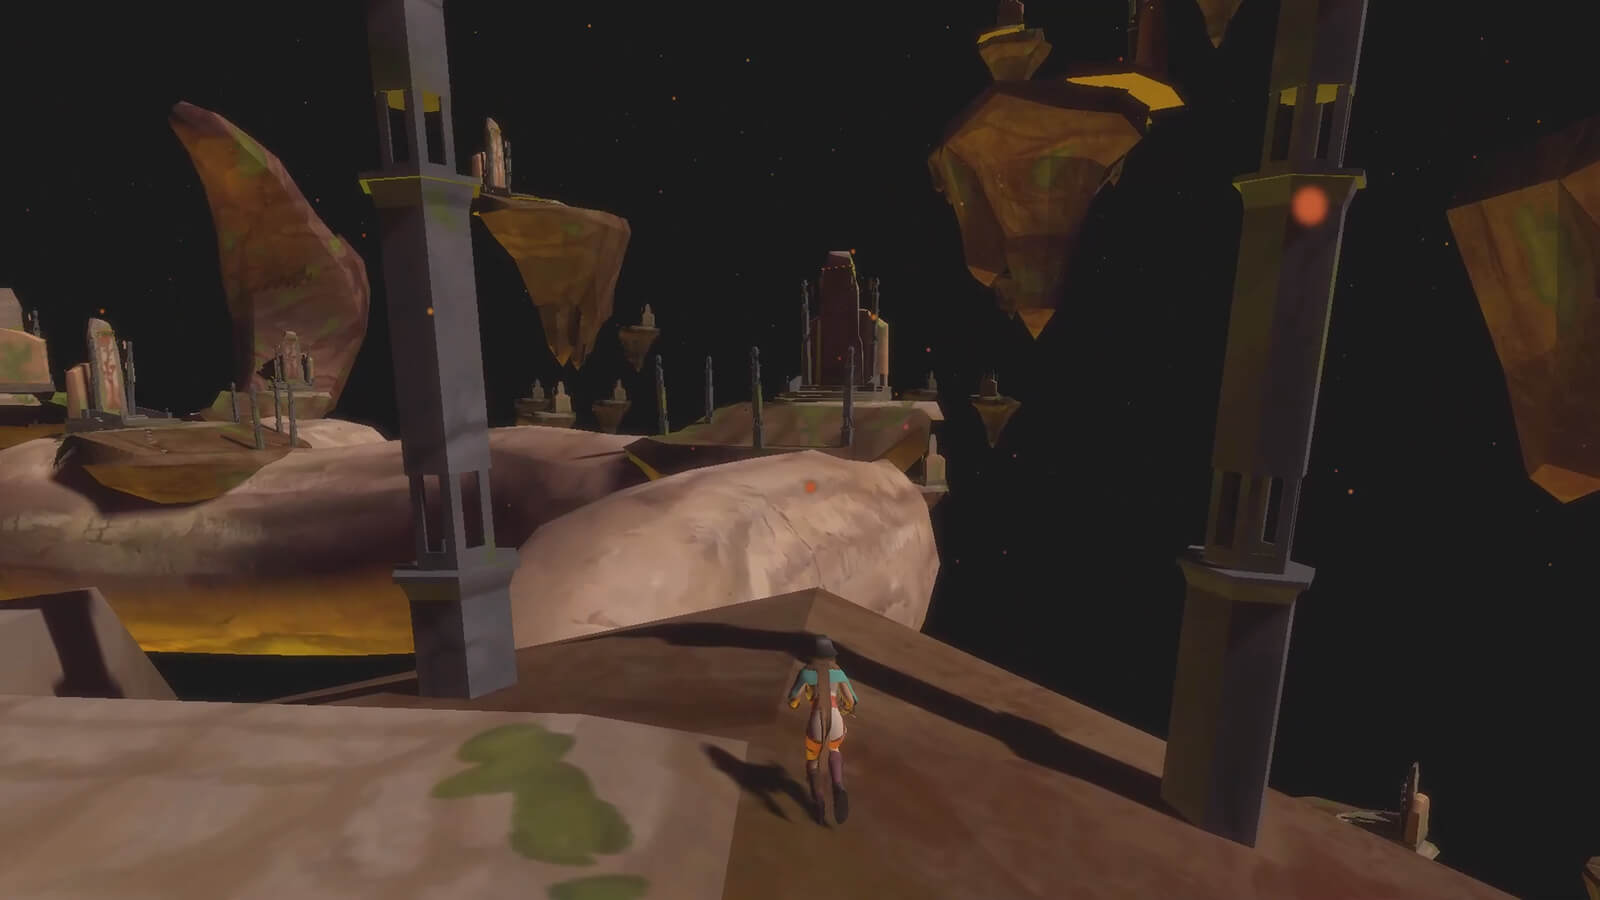 A character stands between two pillars on barren boulder floating in space, looking at similar boulders in the distance.